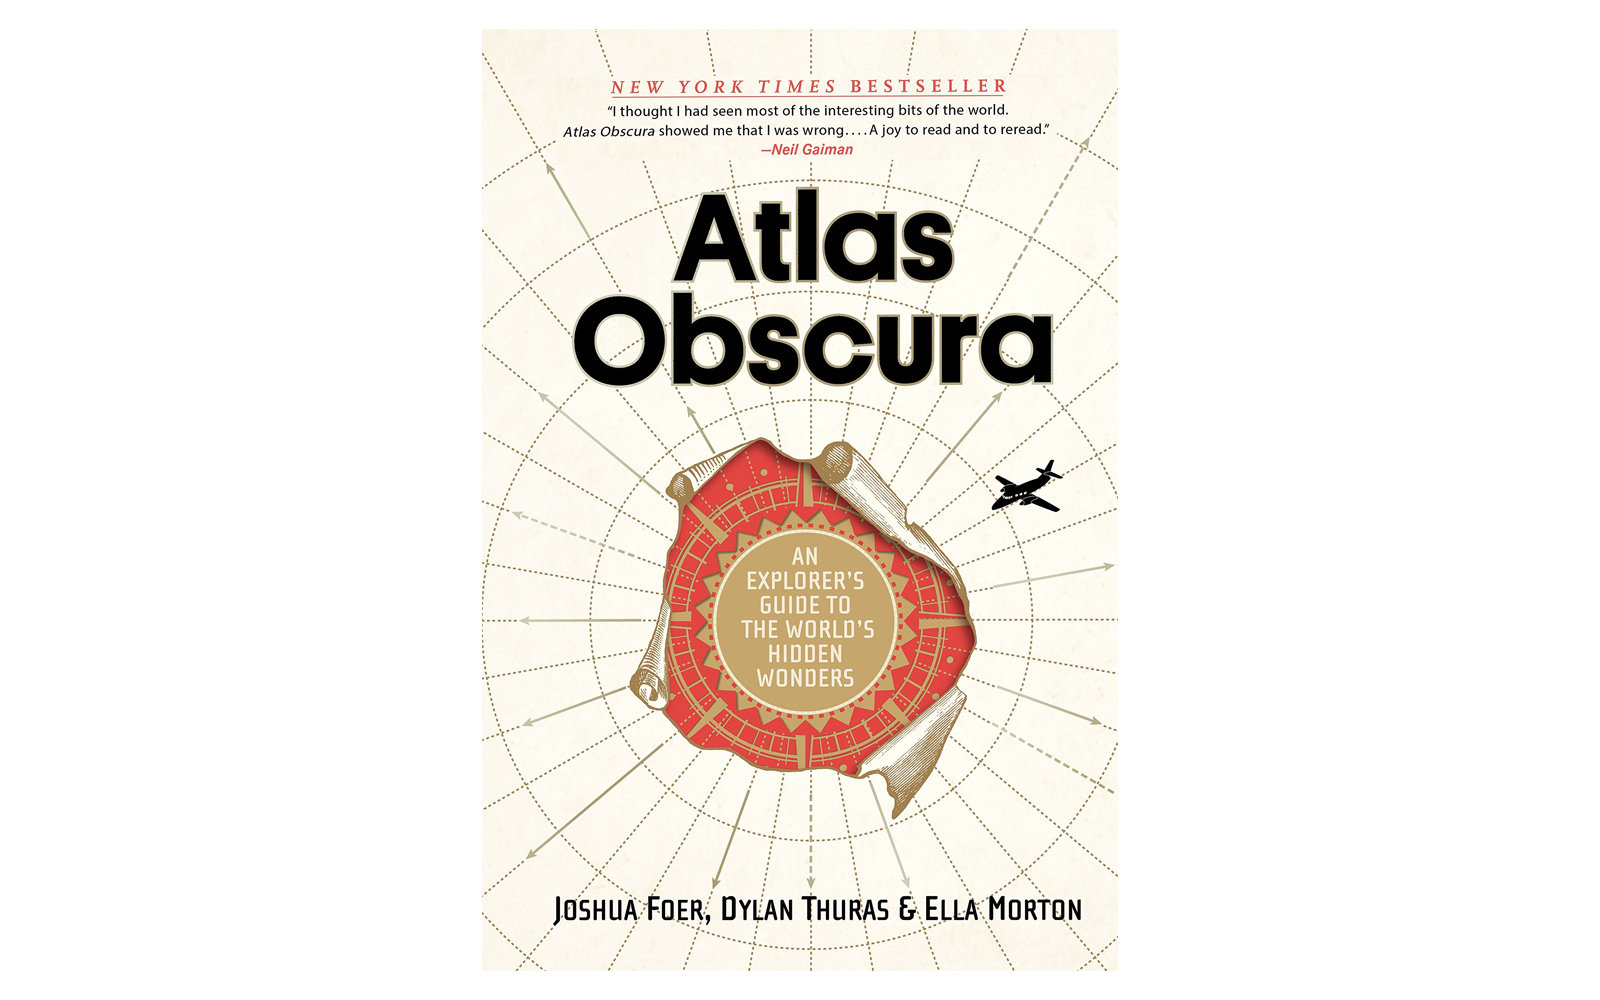 Atlas Obscura  by Joshua Foer, Dylan Thuras, and Ella Morton